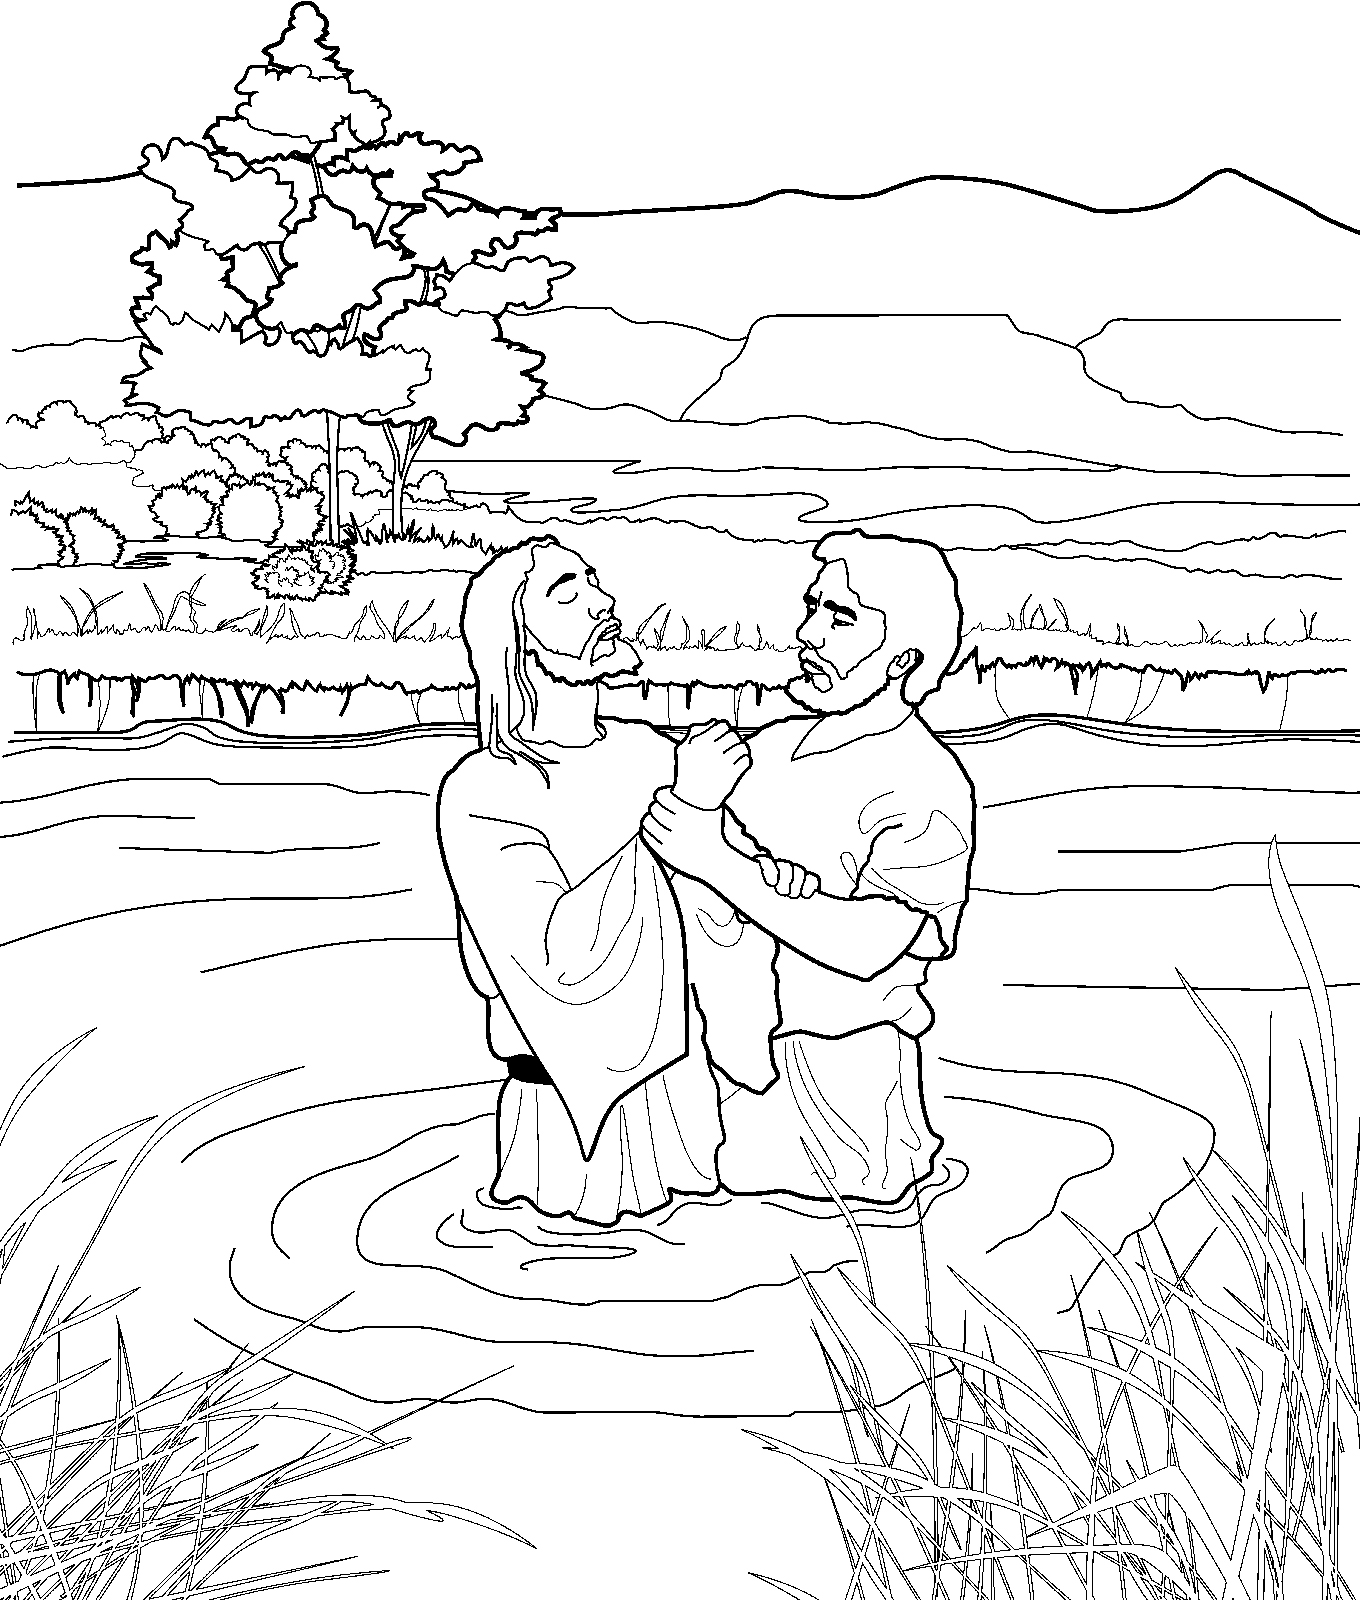 John the Baptist Coloring Page for Kids From Lds Ldsprimary Gallery Of Coloring Pages Thanksgiving Turkey Baptism Page Contemporary Style Download